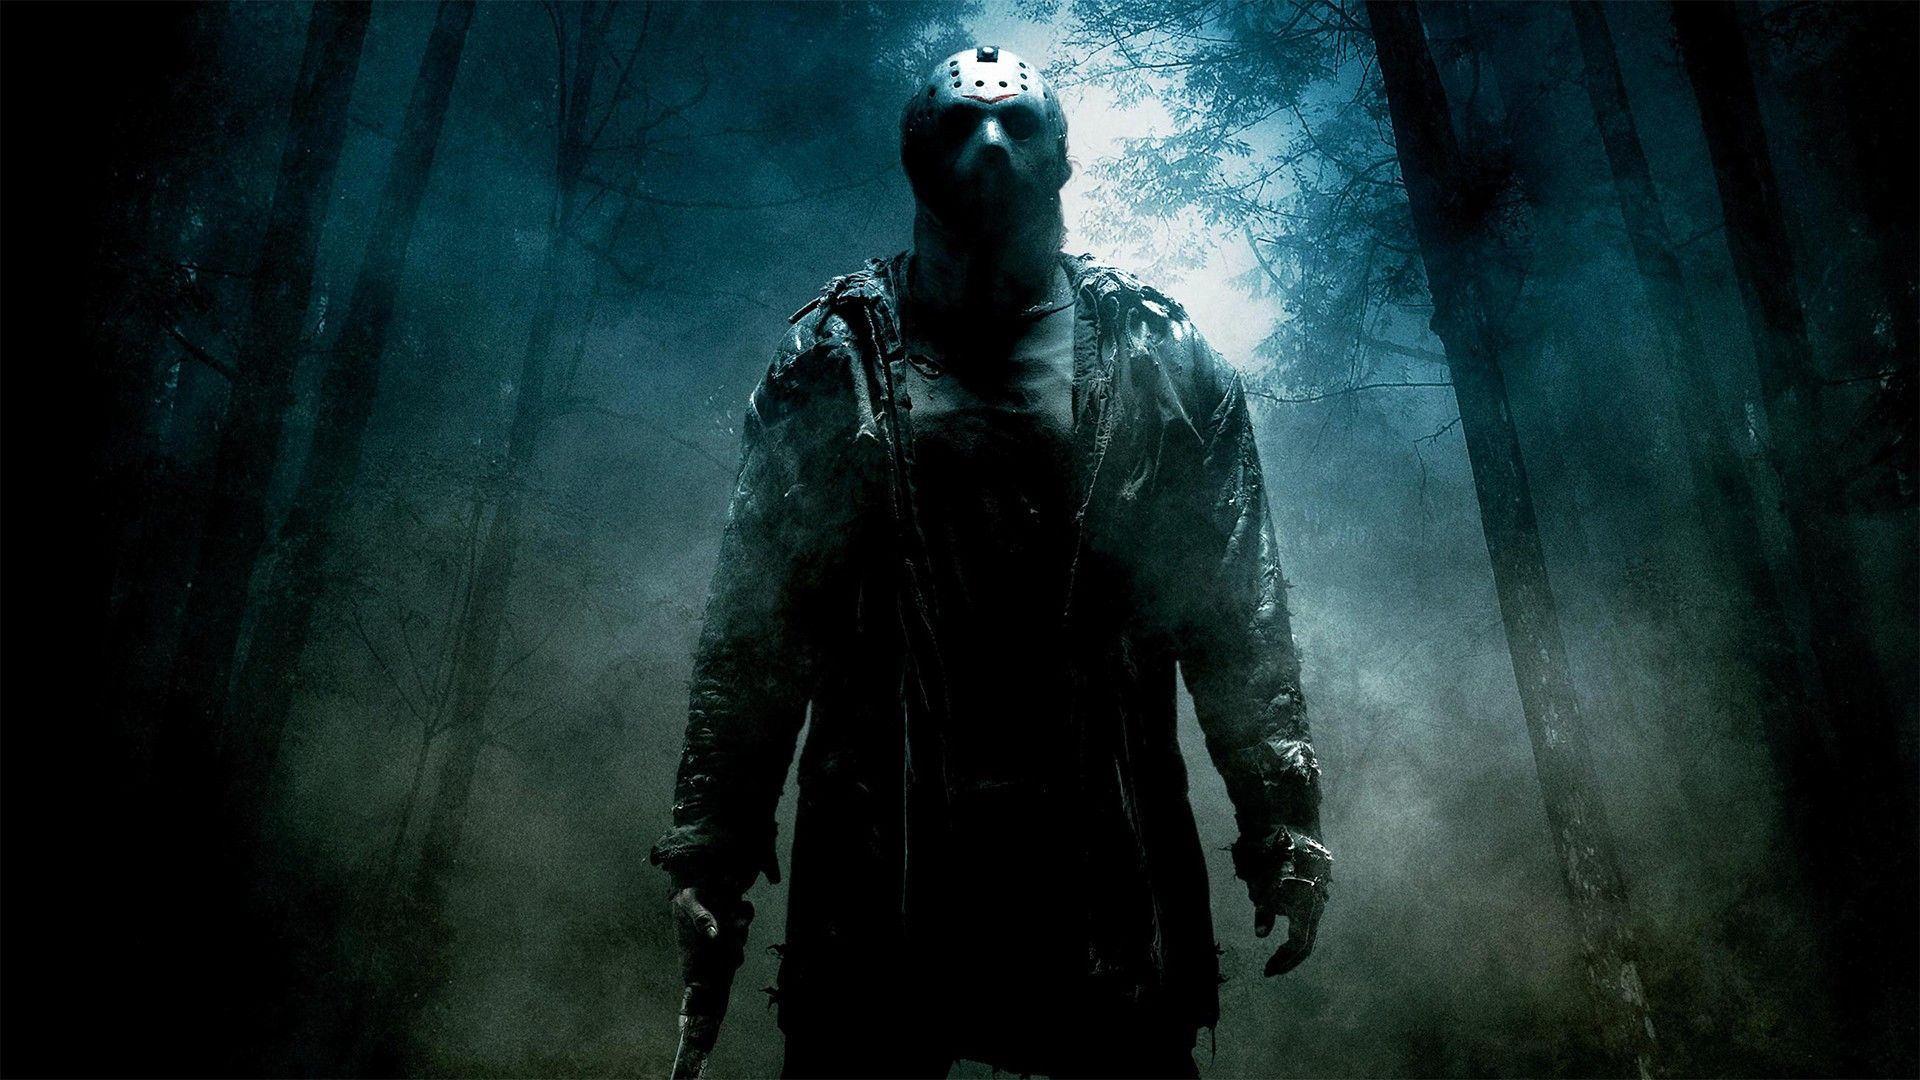 Update: Production on 'Friday the 13th' Reboot Cancelled